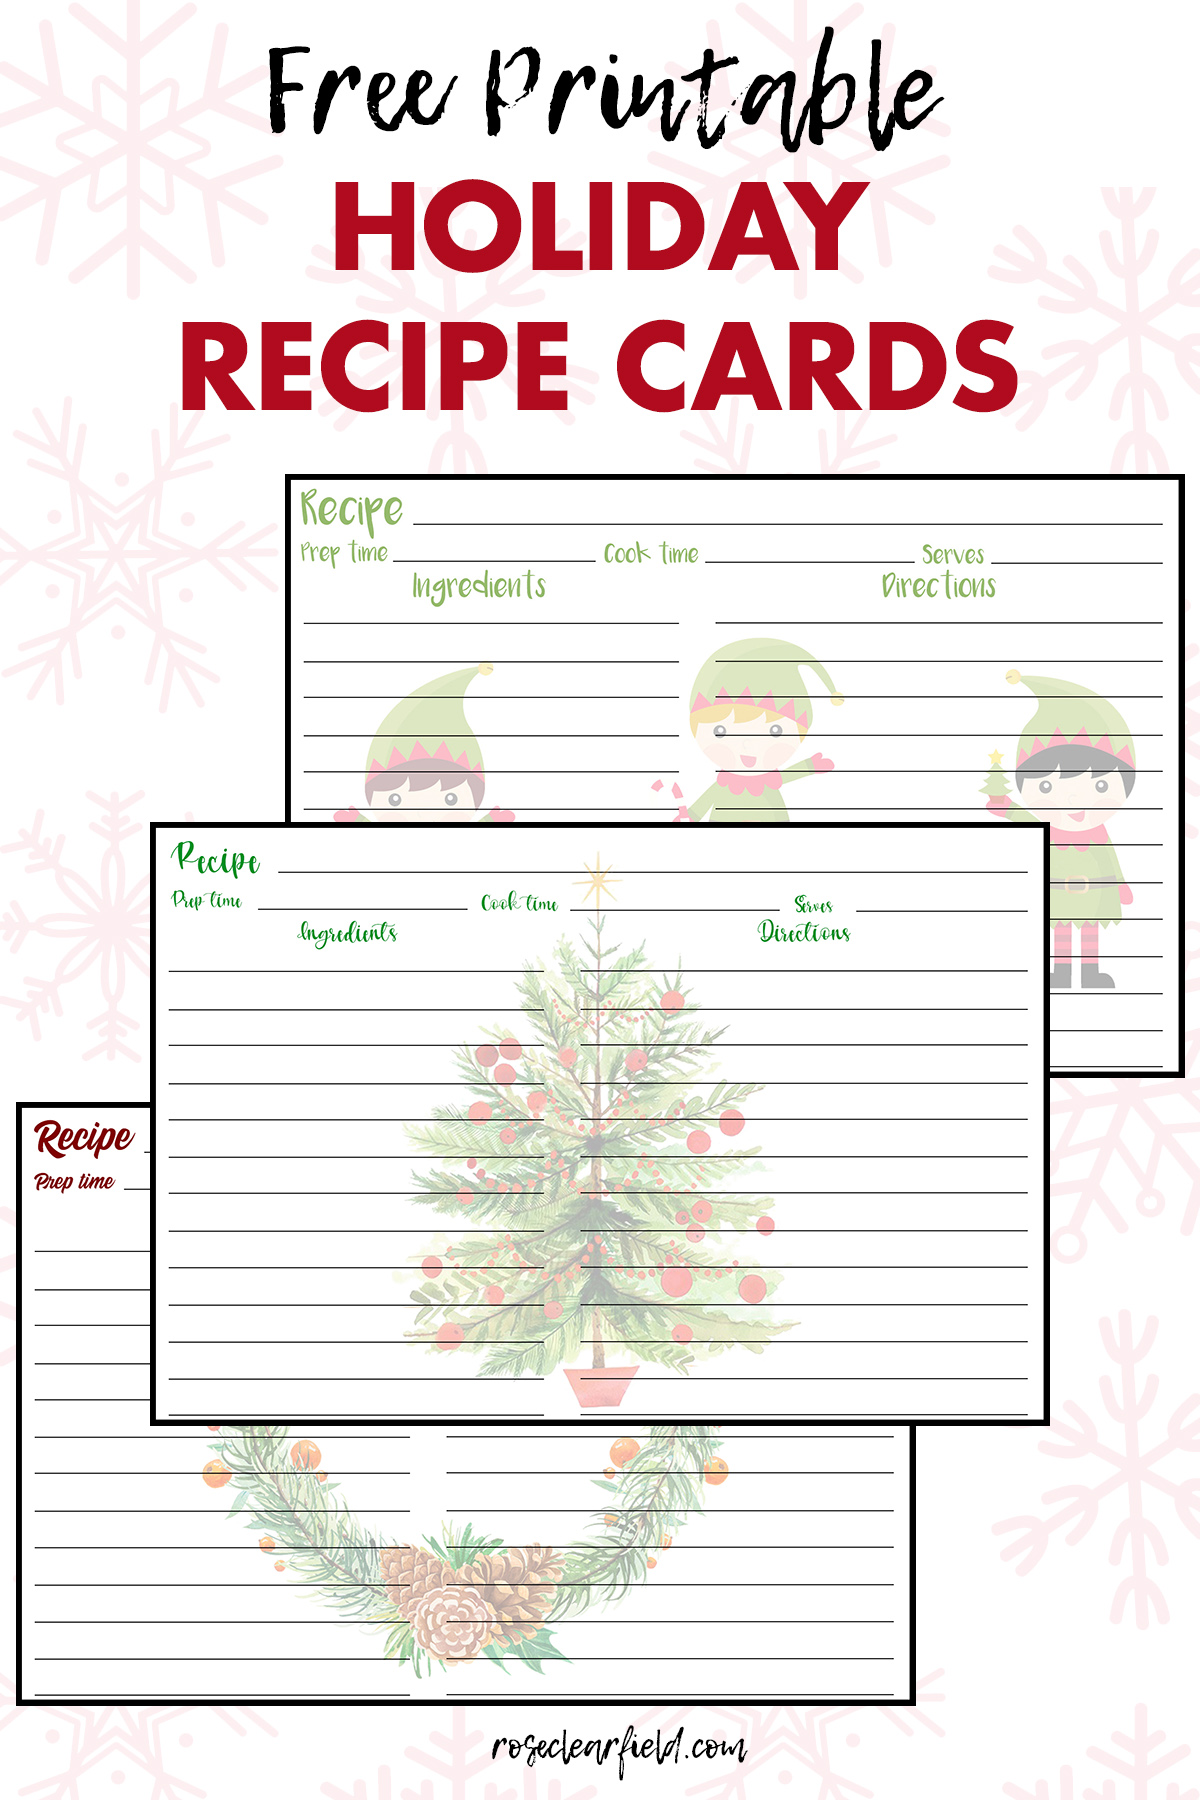 free printable holiday recipe cards  u2022 rose clearfield